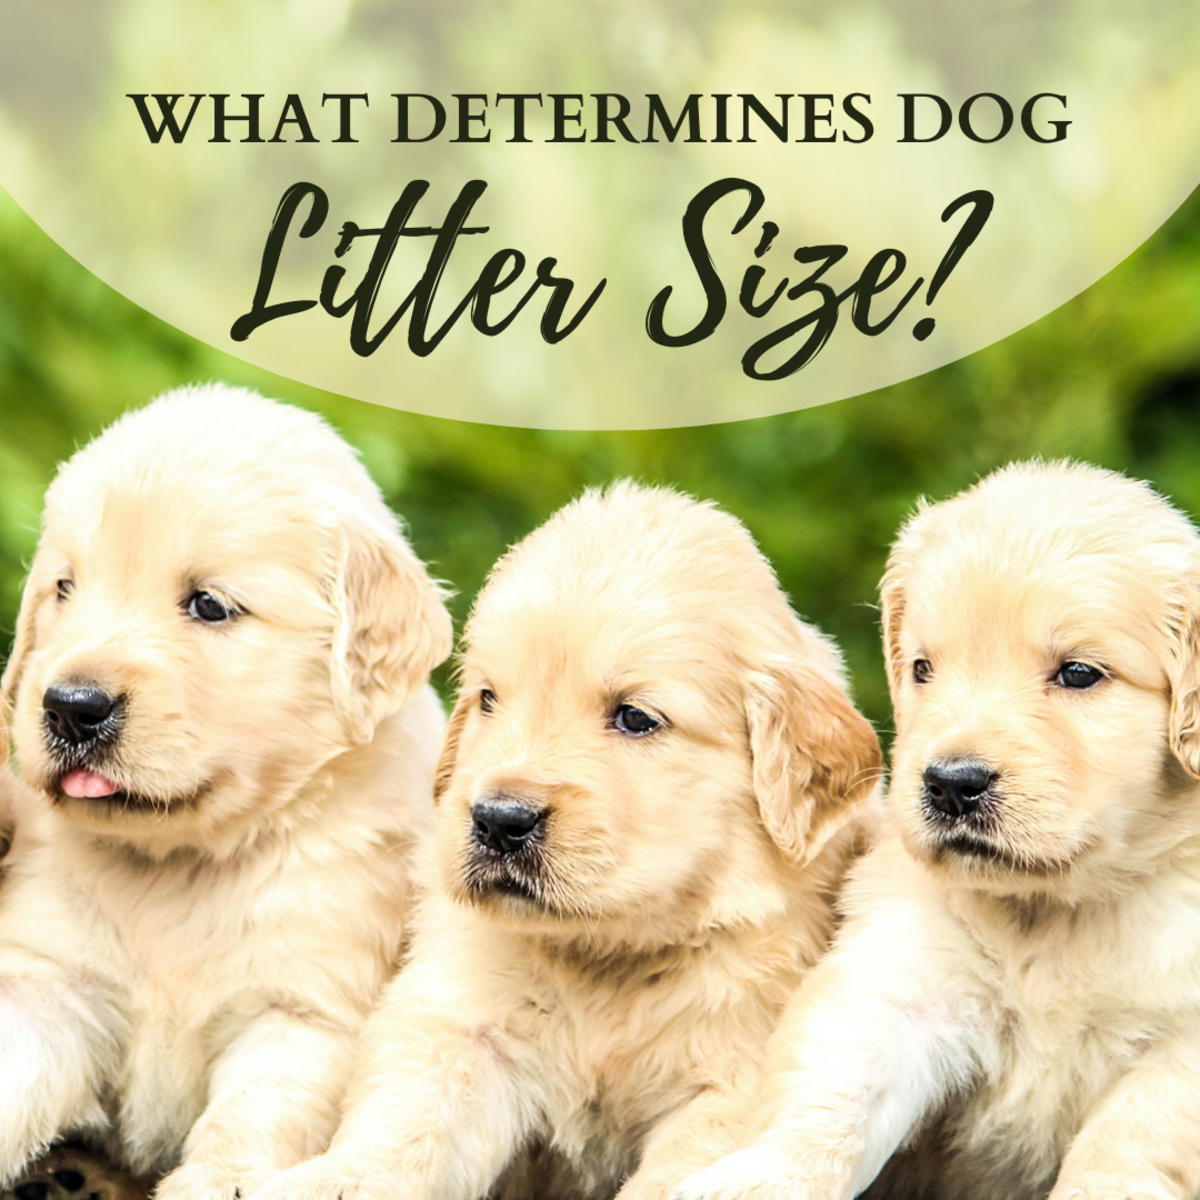 How many puppies are in a litter?